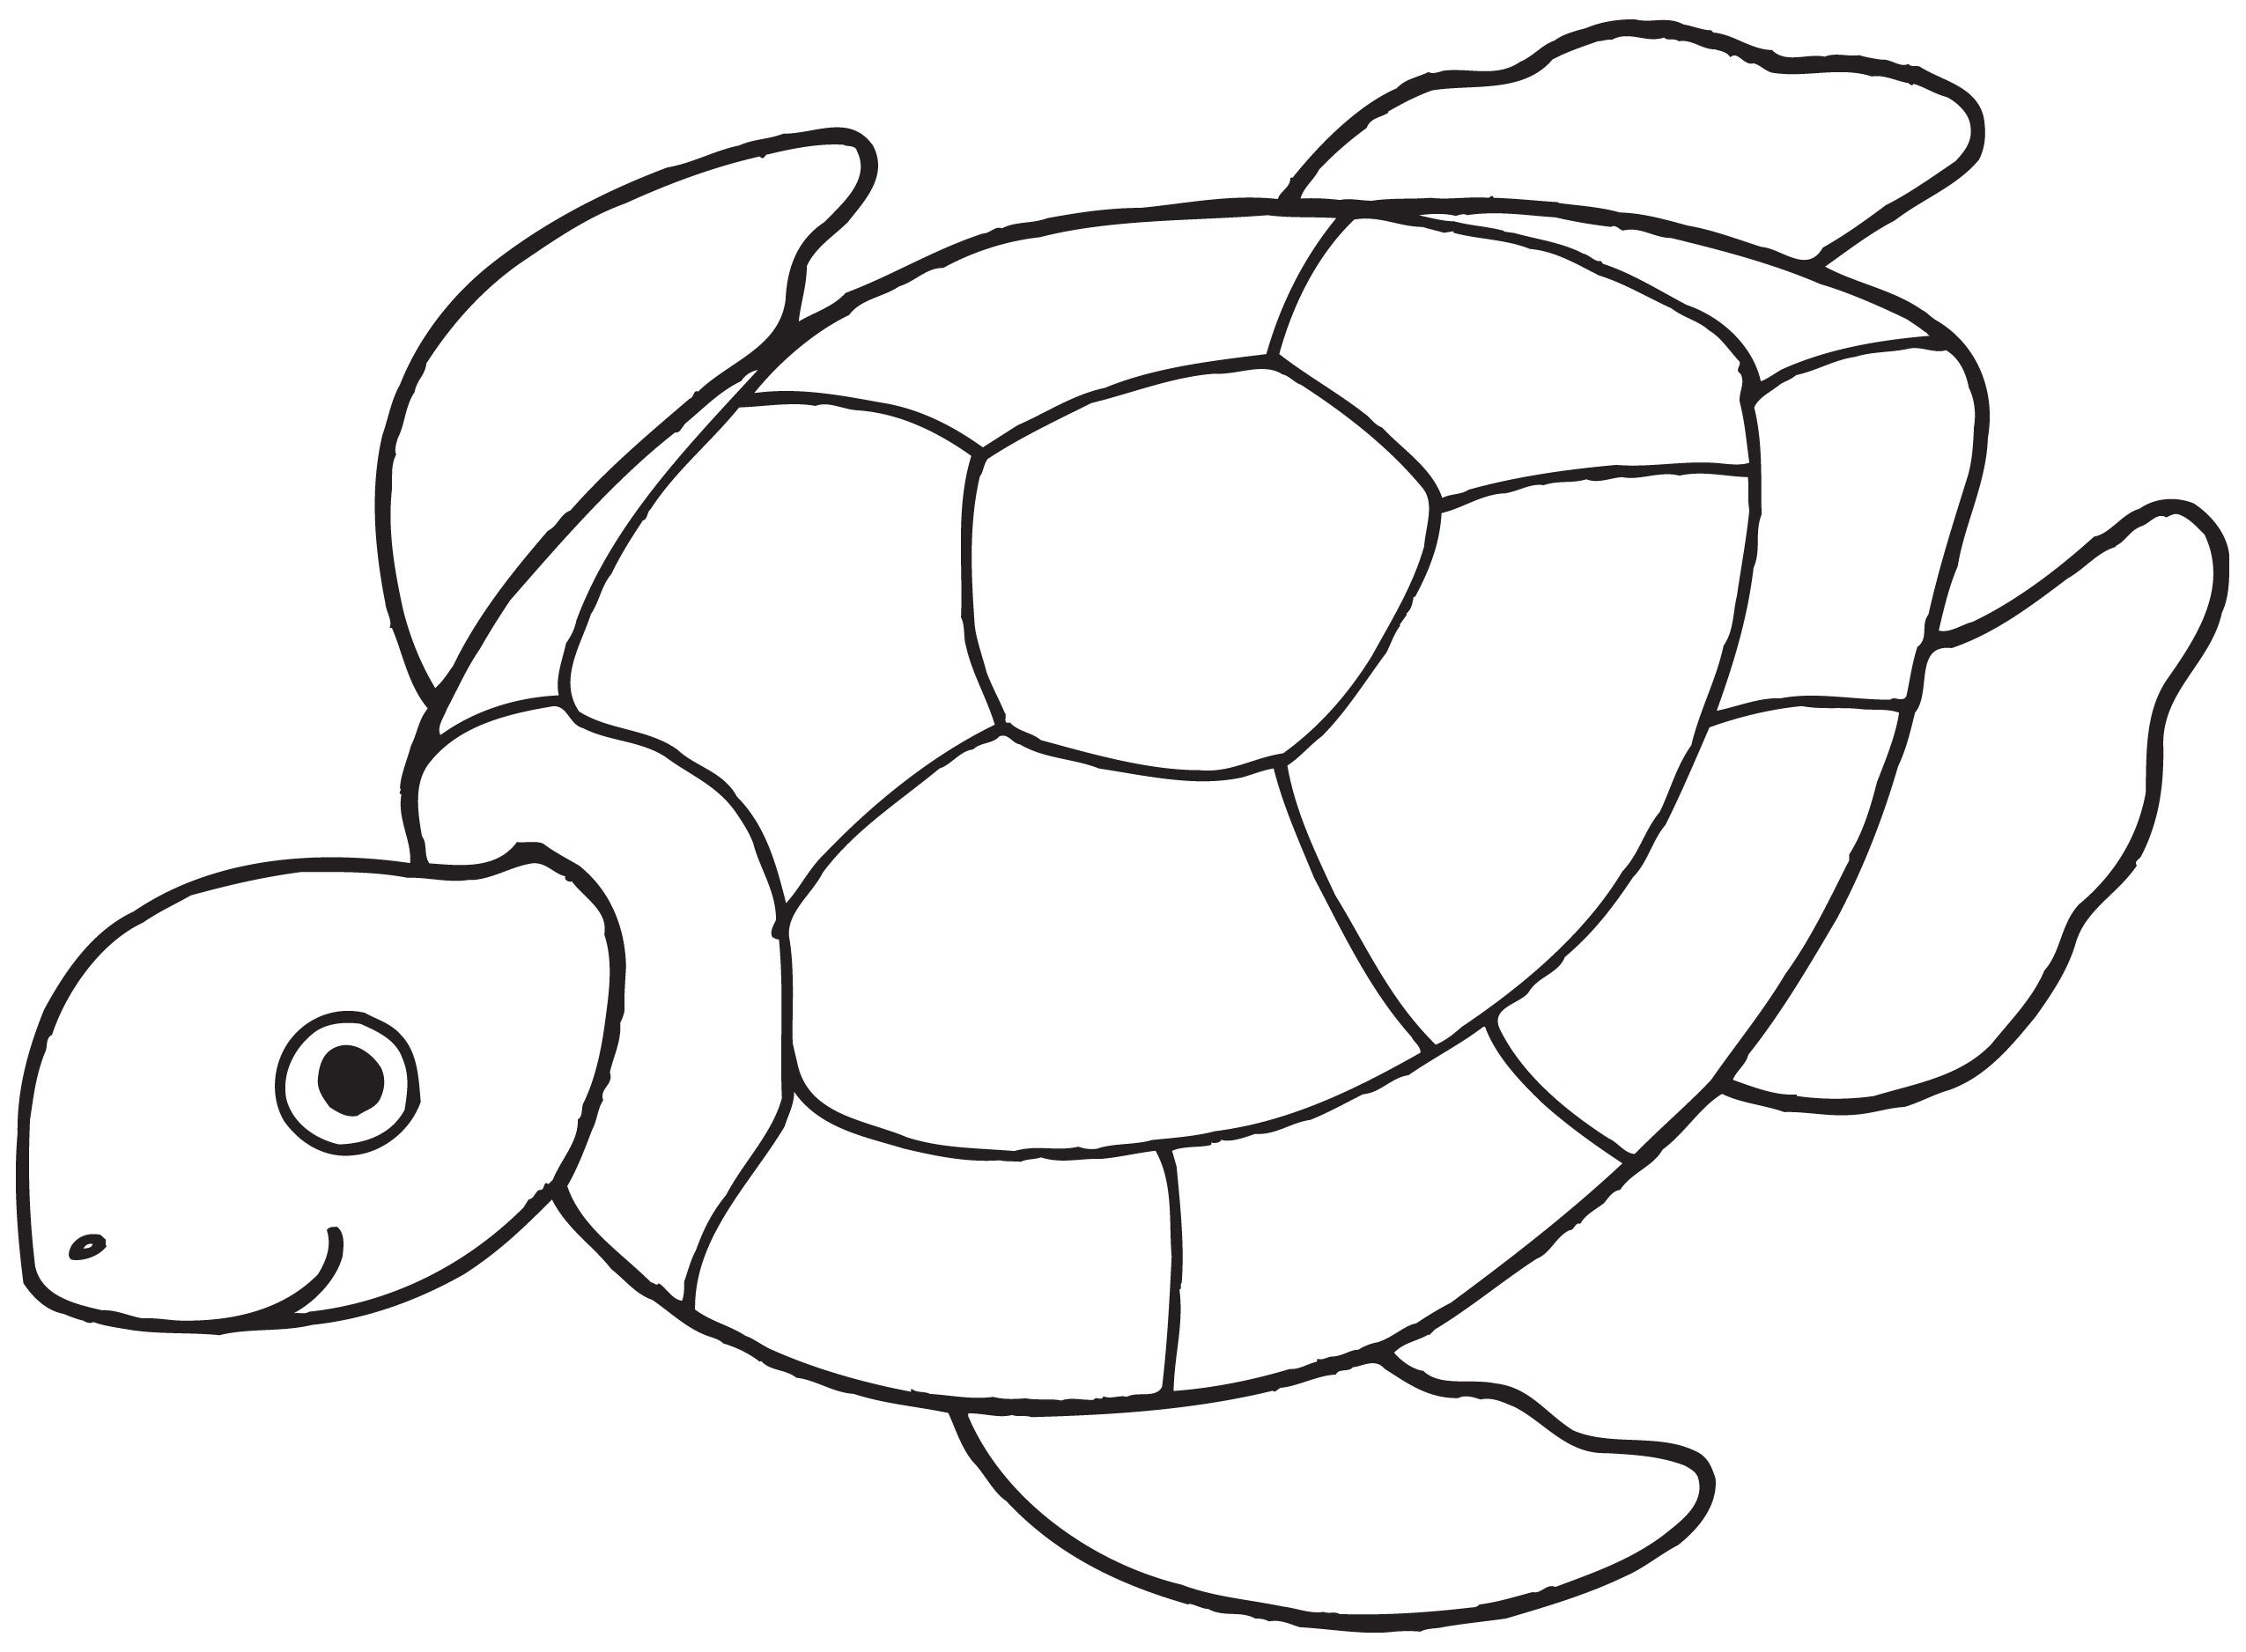 2550x1876 Sea Turtle Coloring Pages For Kids With Free Printable For Kids